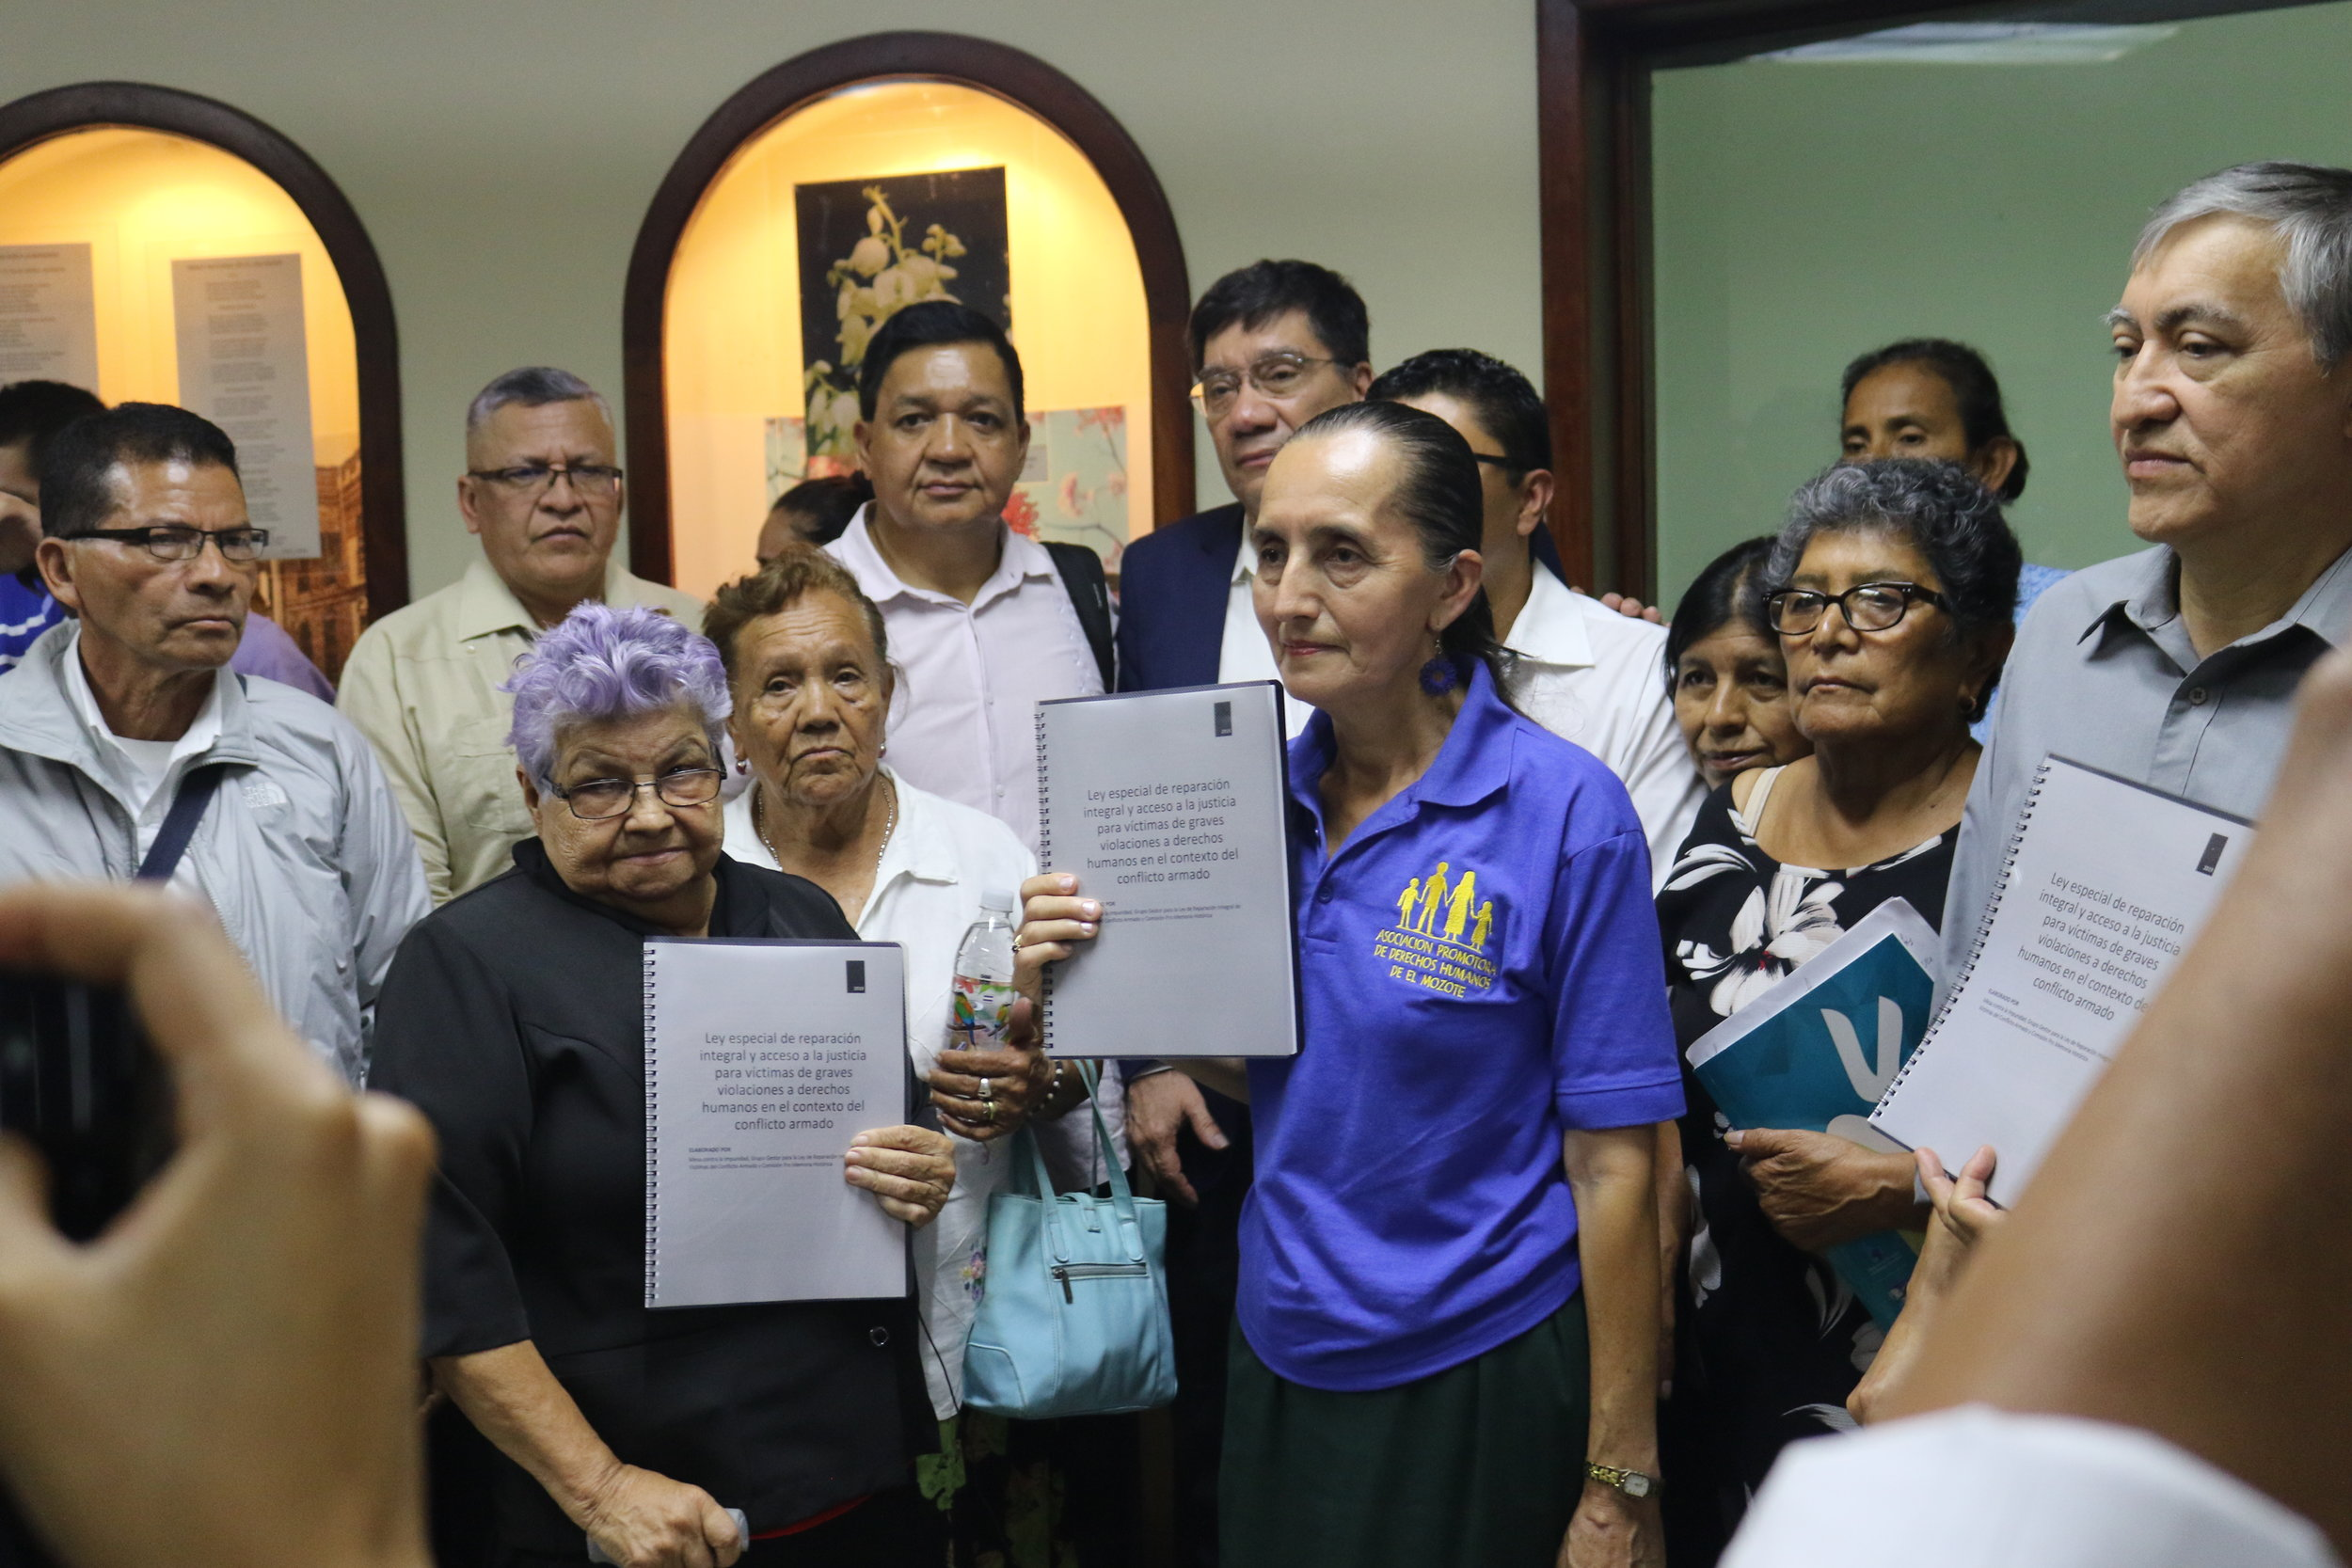 Victims and civil society organizations as they submit their law proposal in the Legislative Assembly.